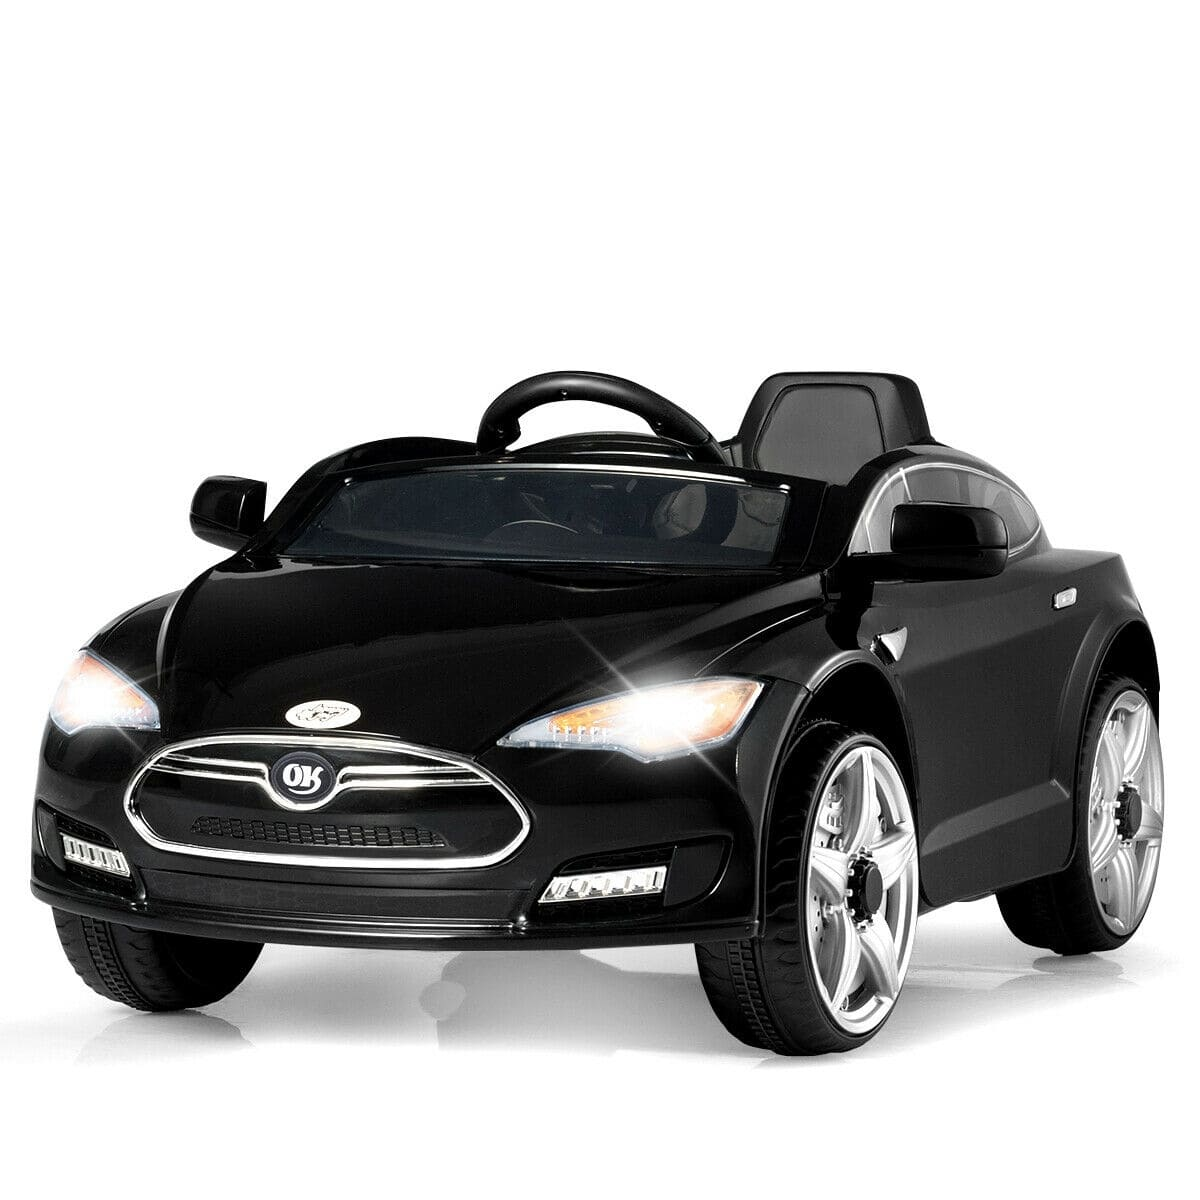 Tesla Inspired 6V Kids Electric Powered Ride On Car with Remote Control